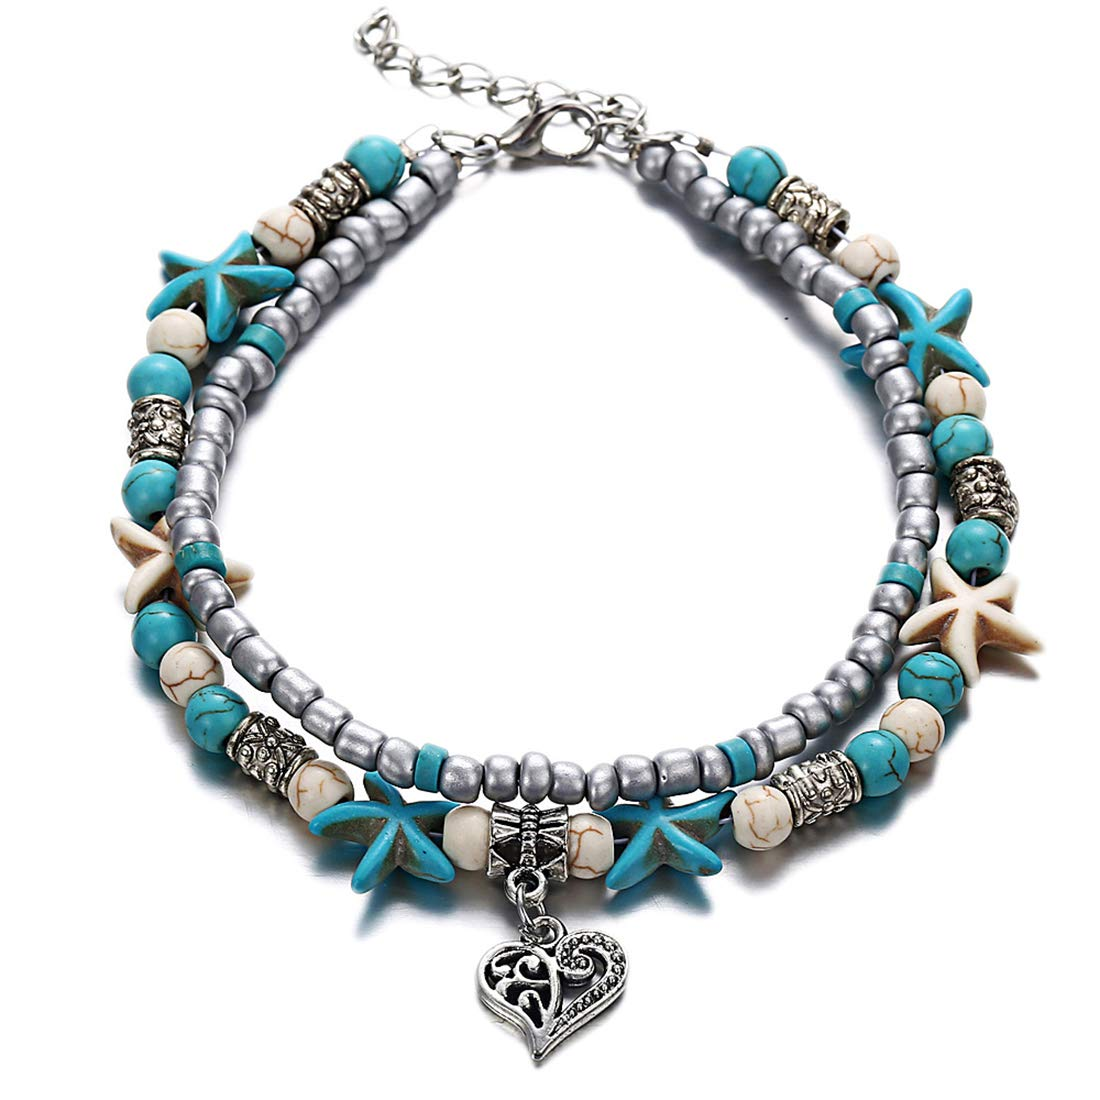 Marrymi Women Boho Anklet Foot Jewelry Blue Starfish Turtle Anklet Multilayer Charm Beads Sea Handmade